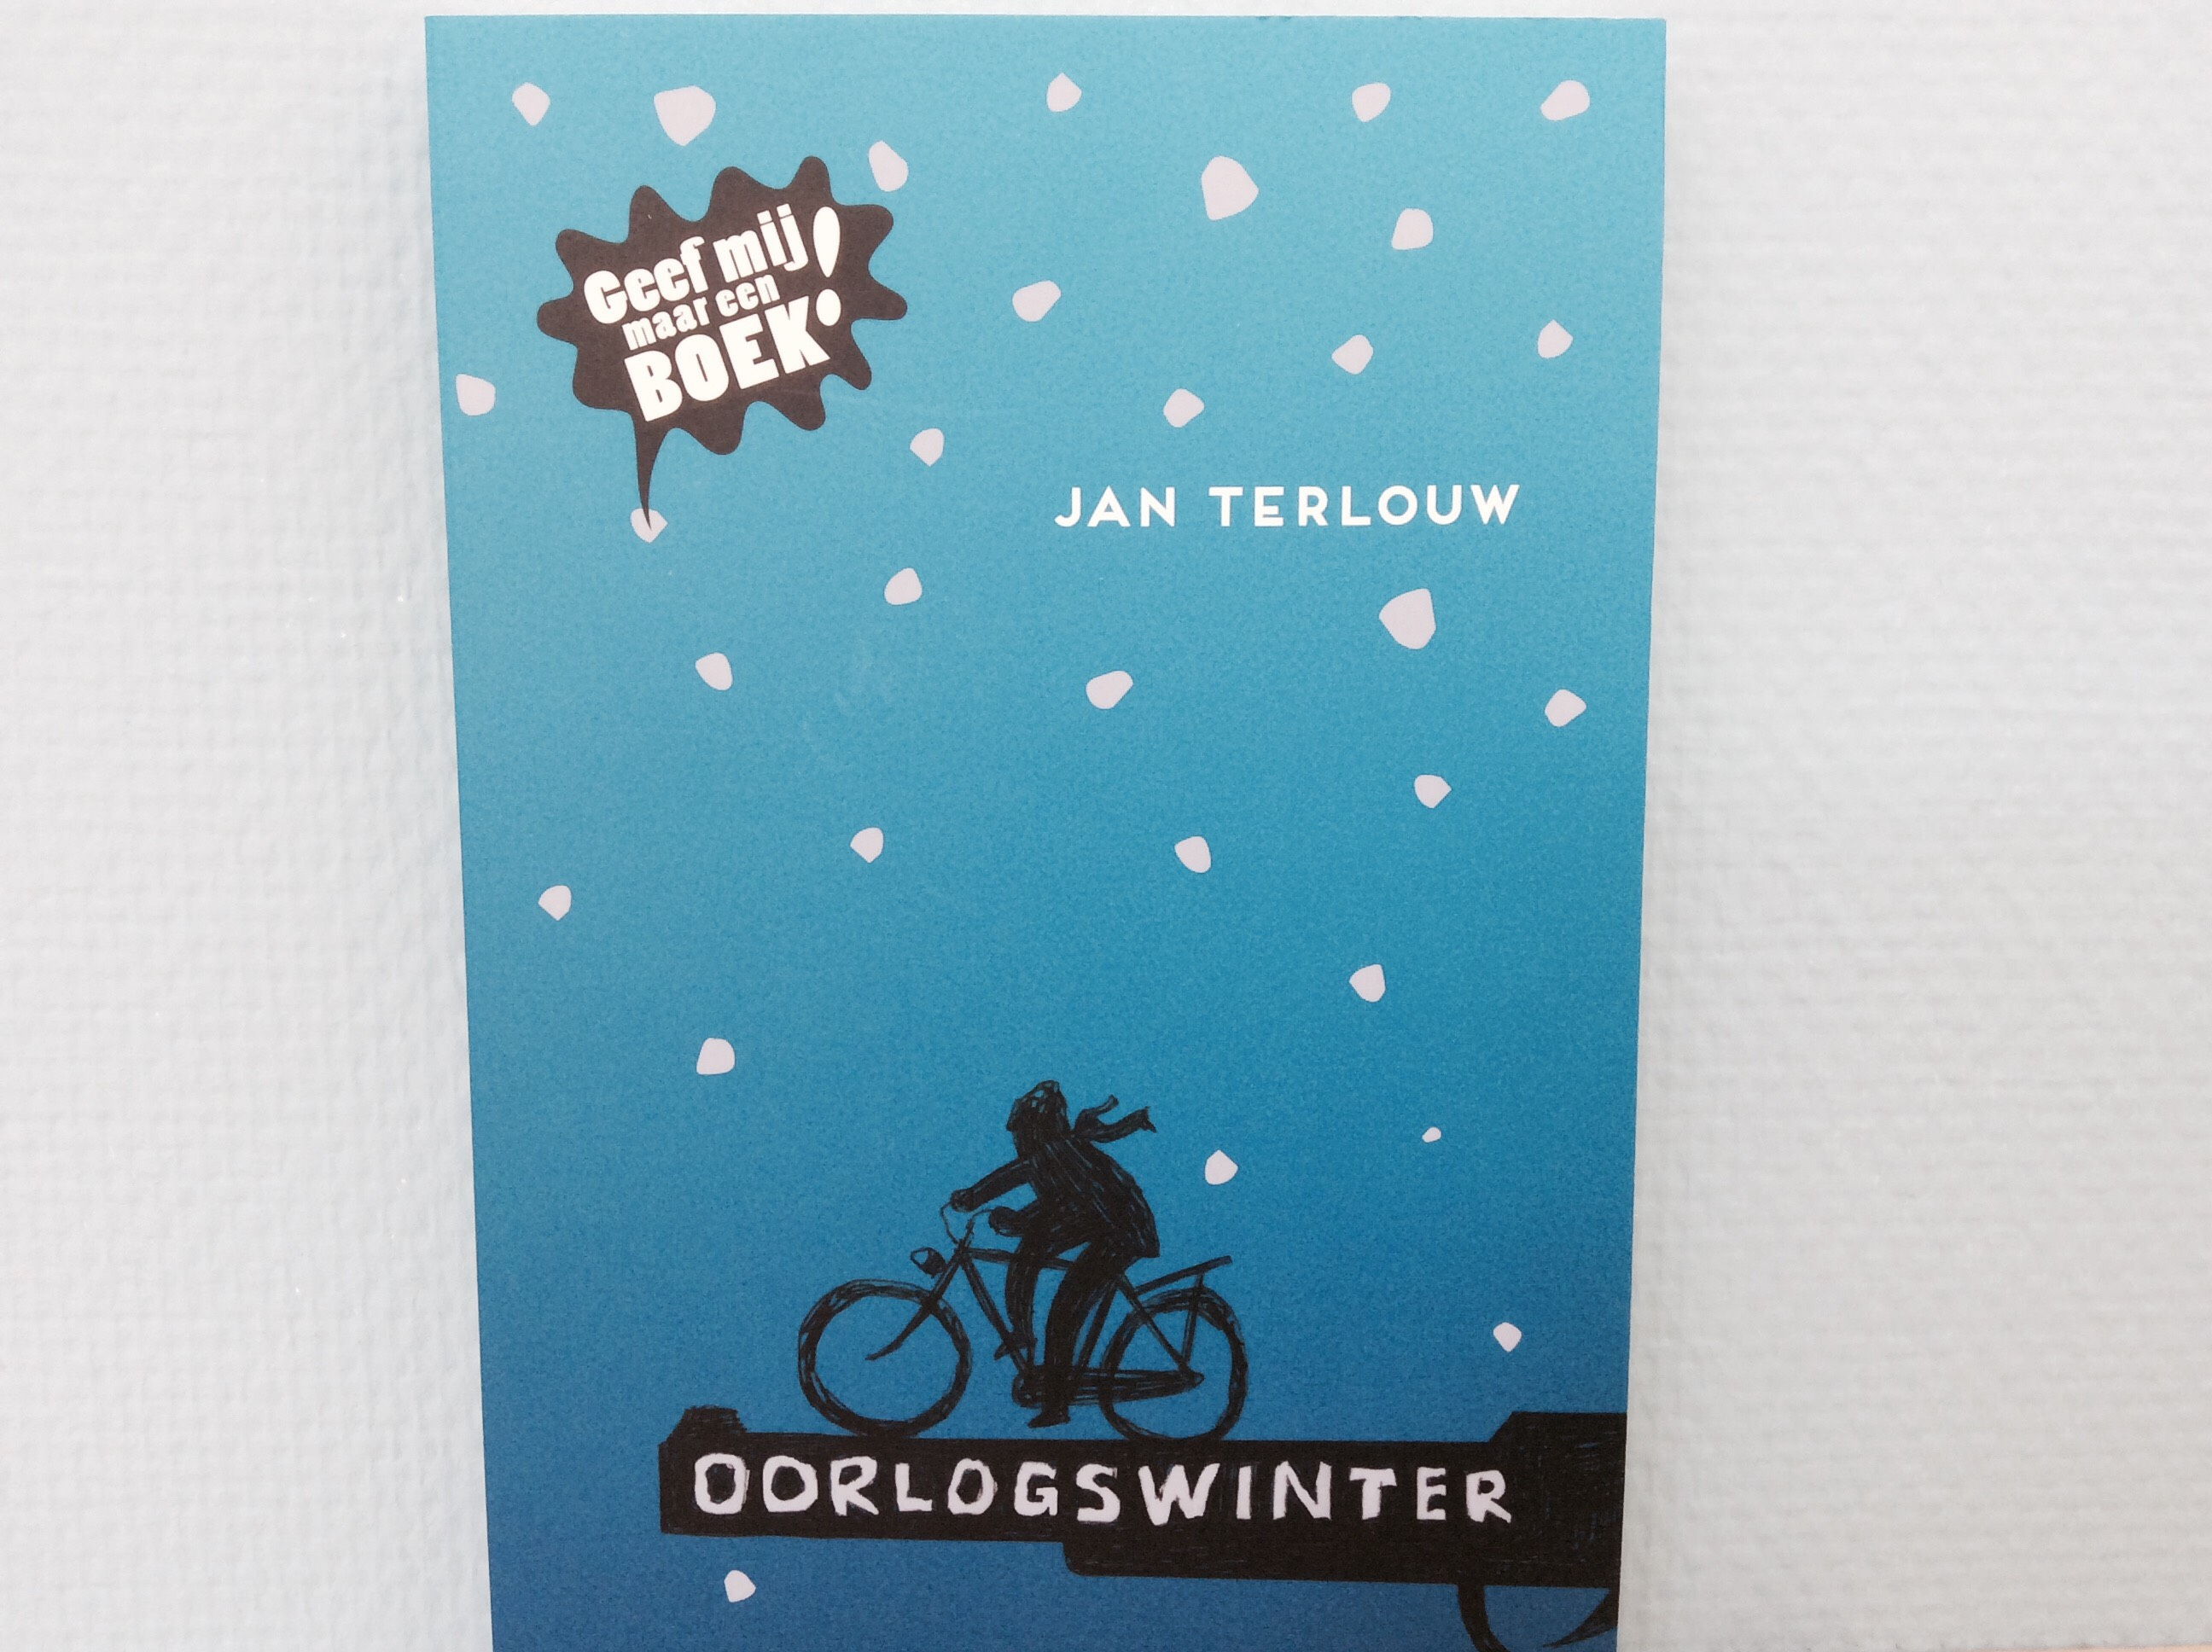 Oorlogswinter Jan Terlouw by Book Barista